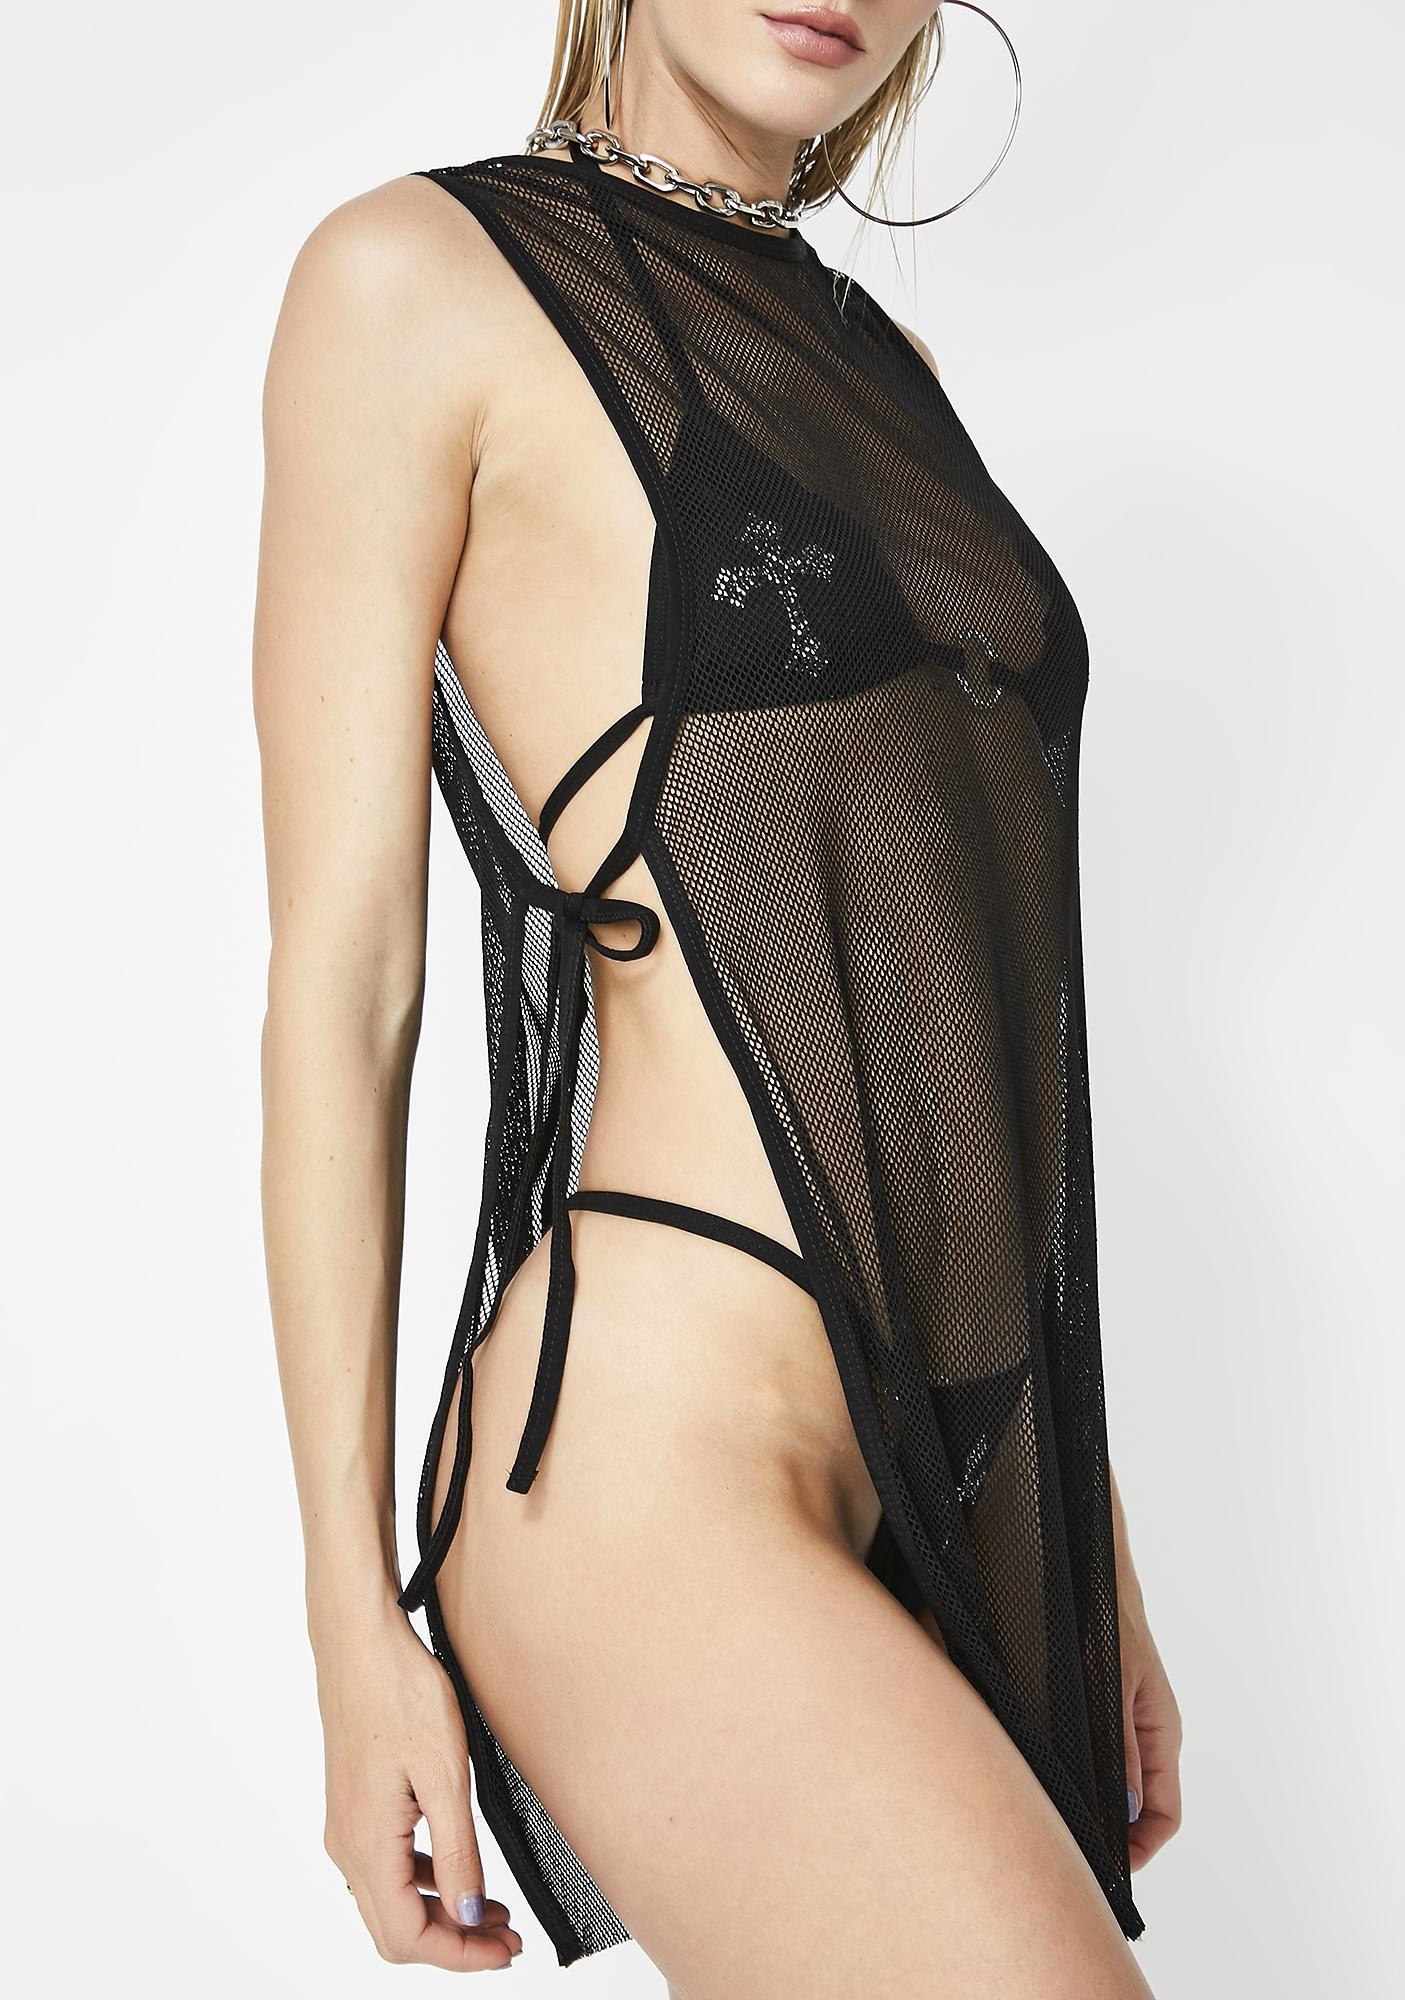 Poster Grl Never Censored Mesh Cover Up